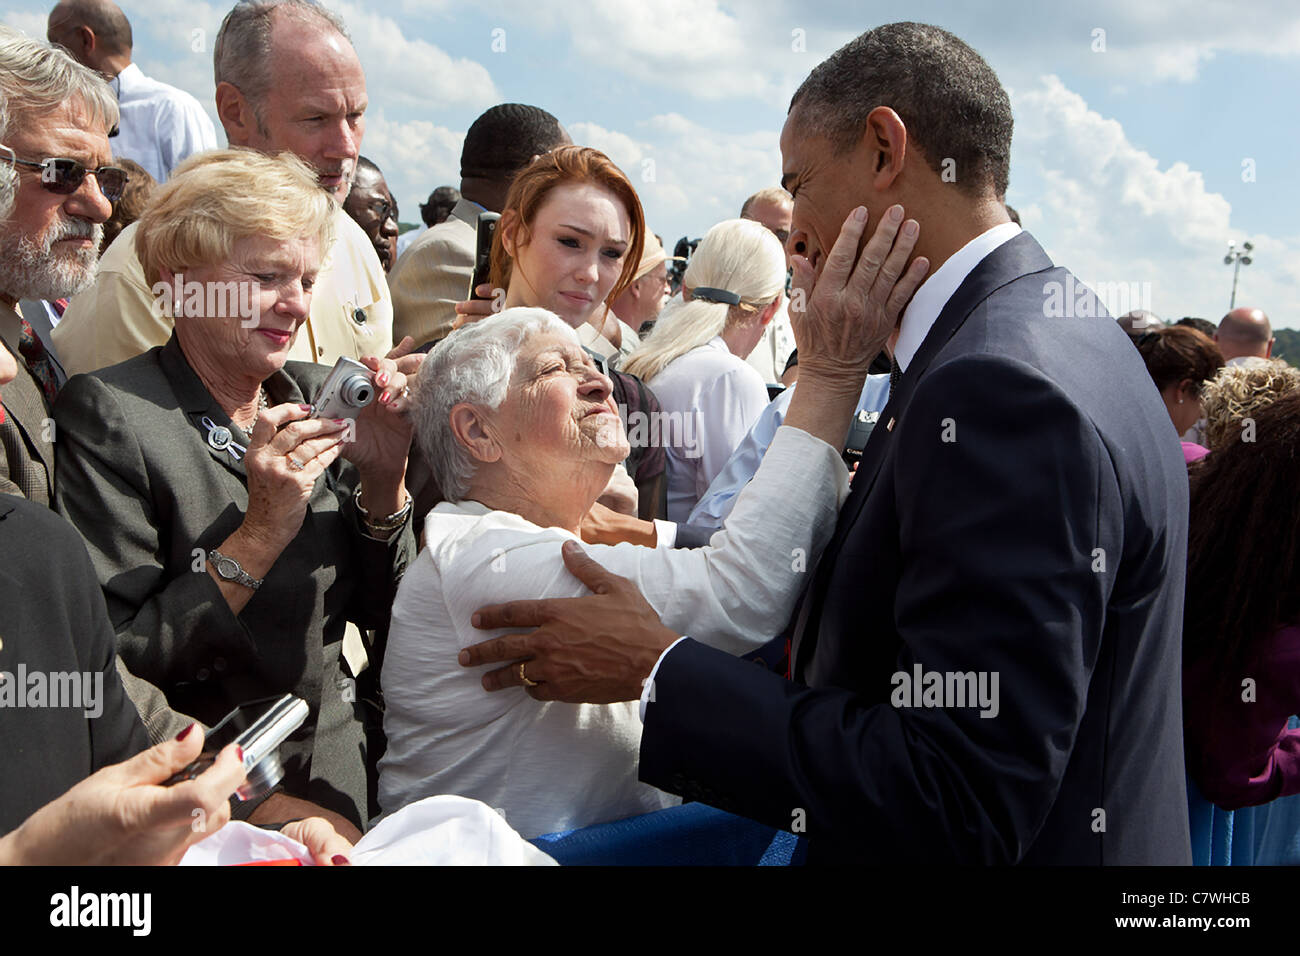 President Barack Obama greets a woman following a ceremony to commemorate the tenth anniversary of the 9/11 attacks - Stock Image